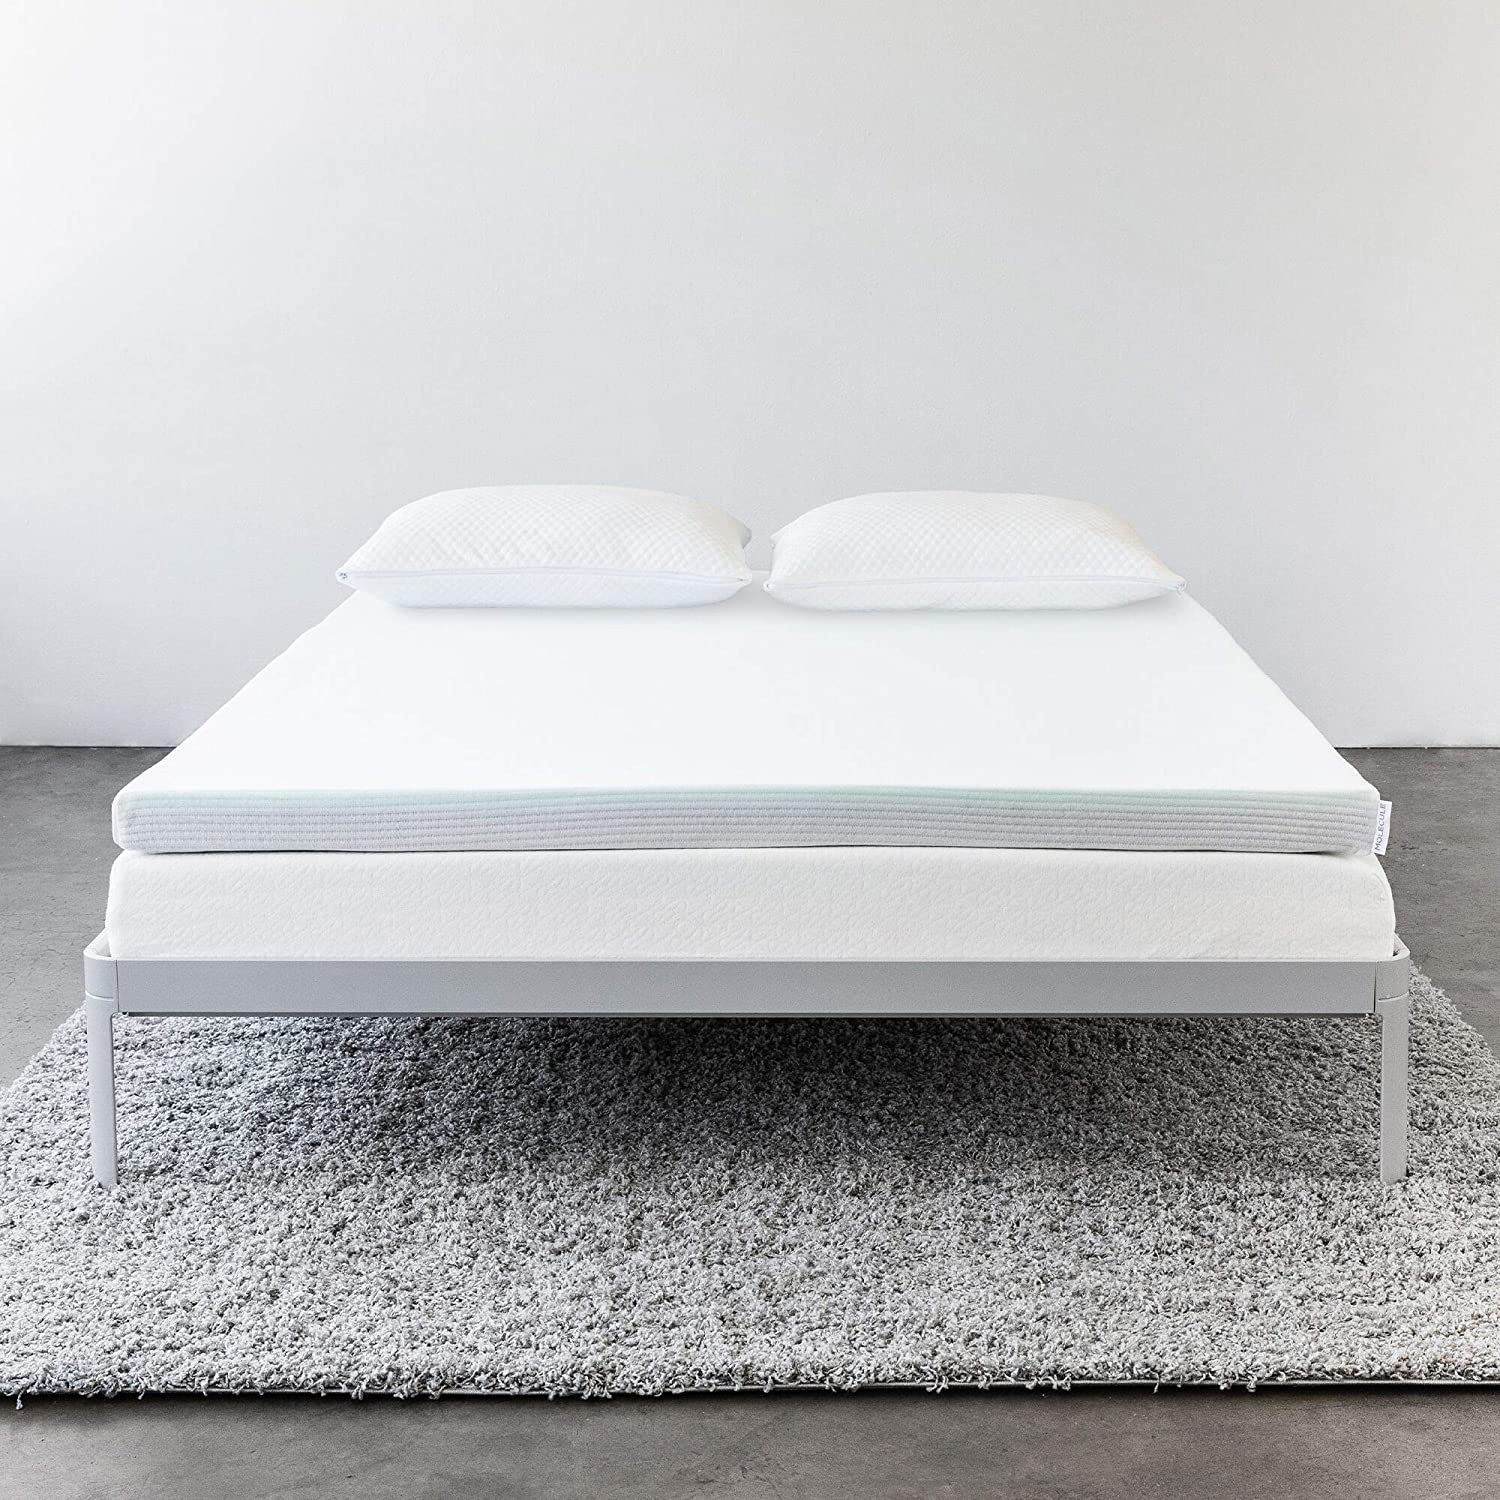 Molecule Triple-Zone Mattress Topper - Engineered for Cooling Comfort, Performance and Recovery with Optimal Support and Pressure Relief (Queen)